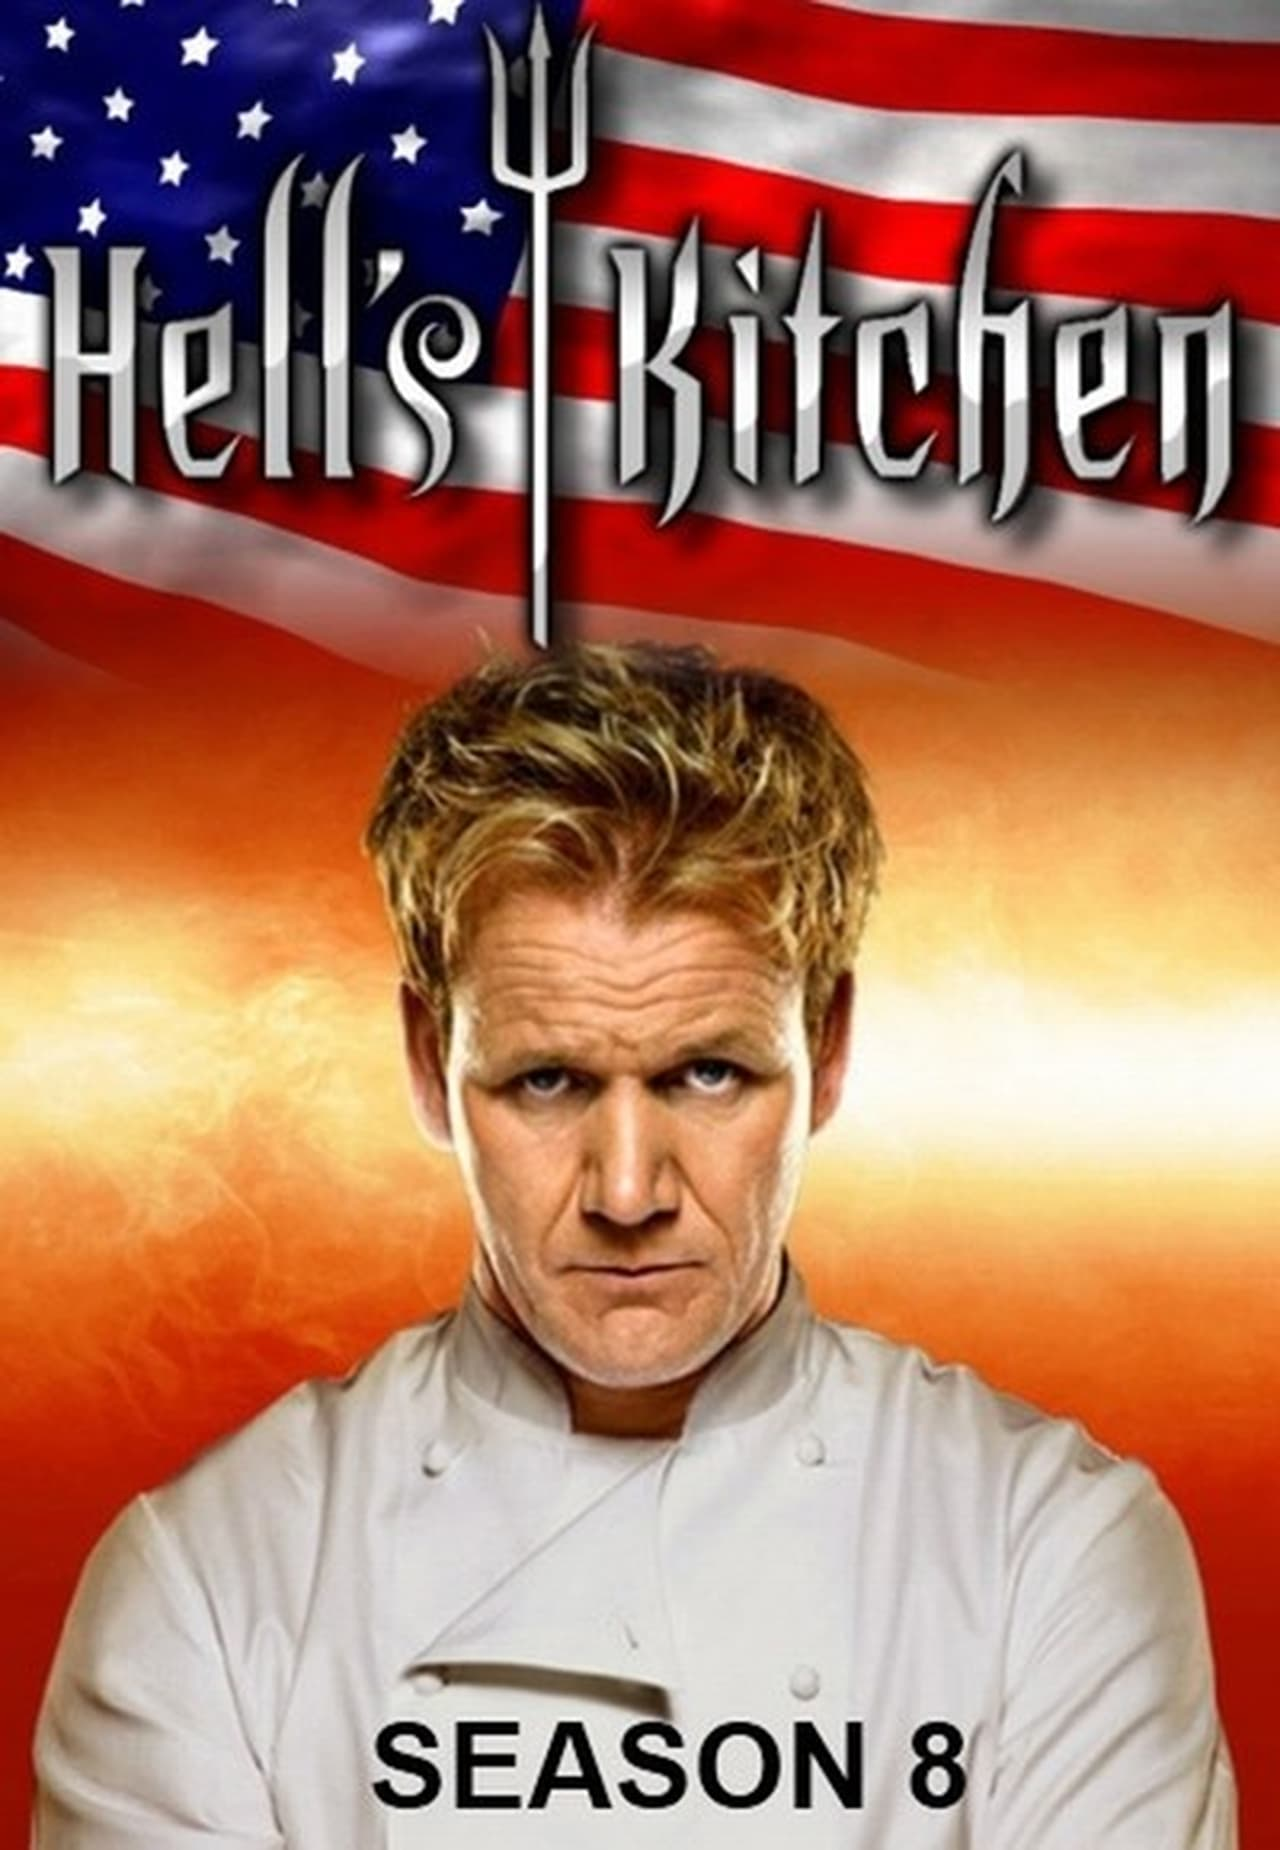 Hell's Kitchen Season 8 (2010) putlockers cafe